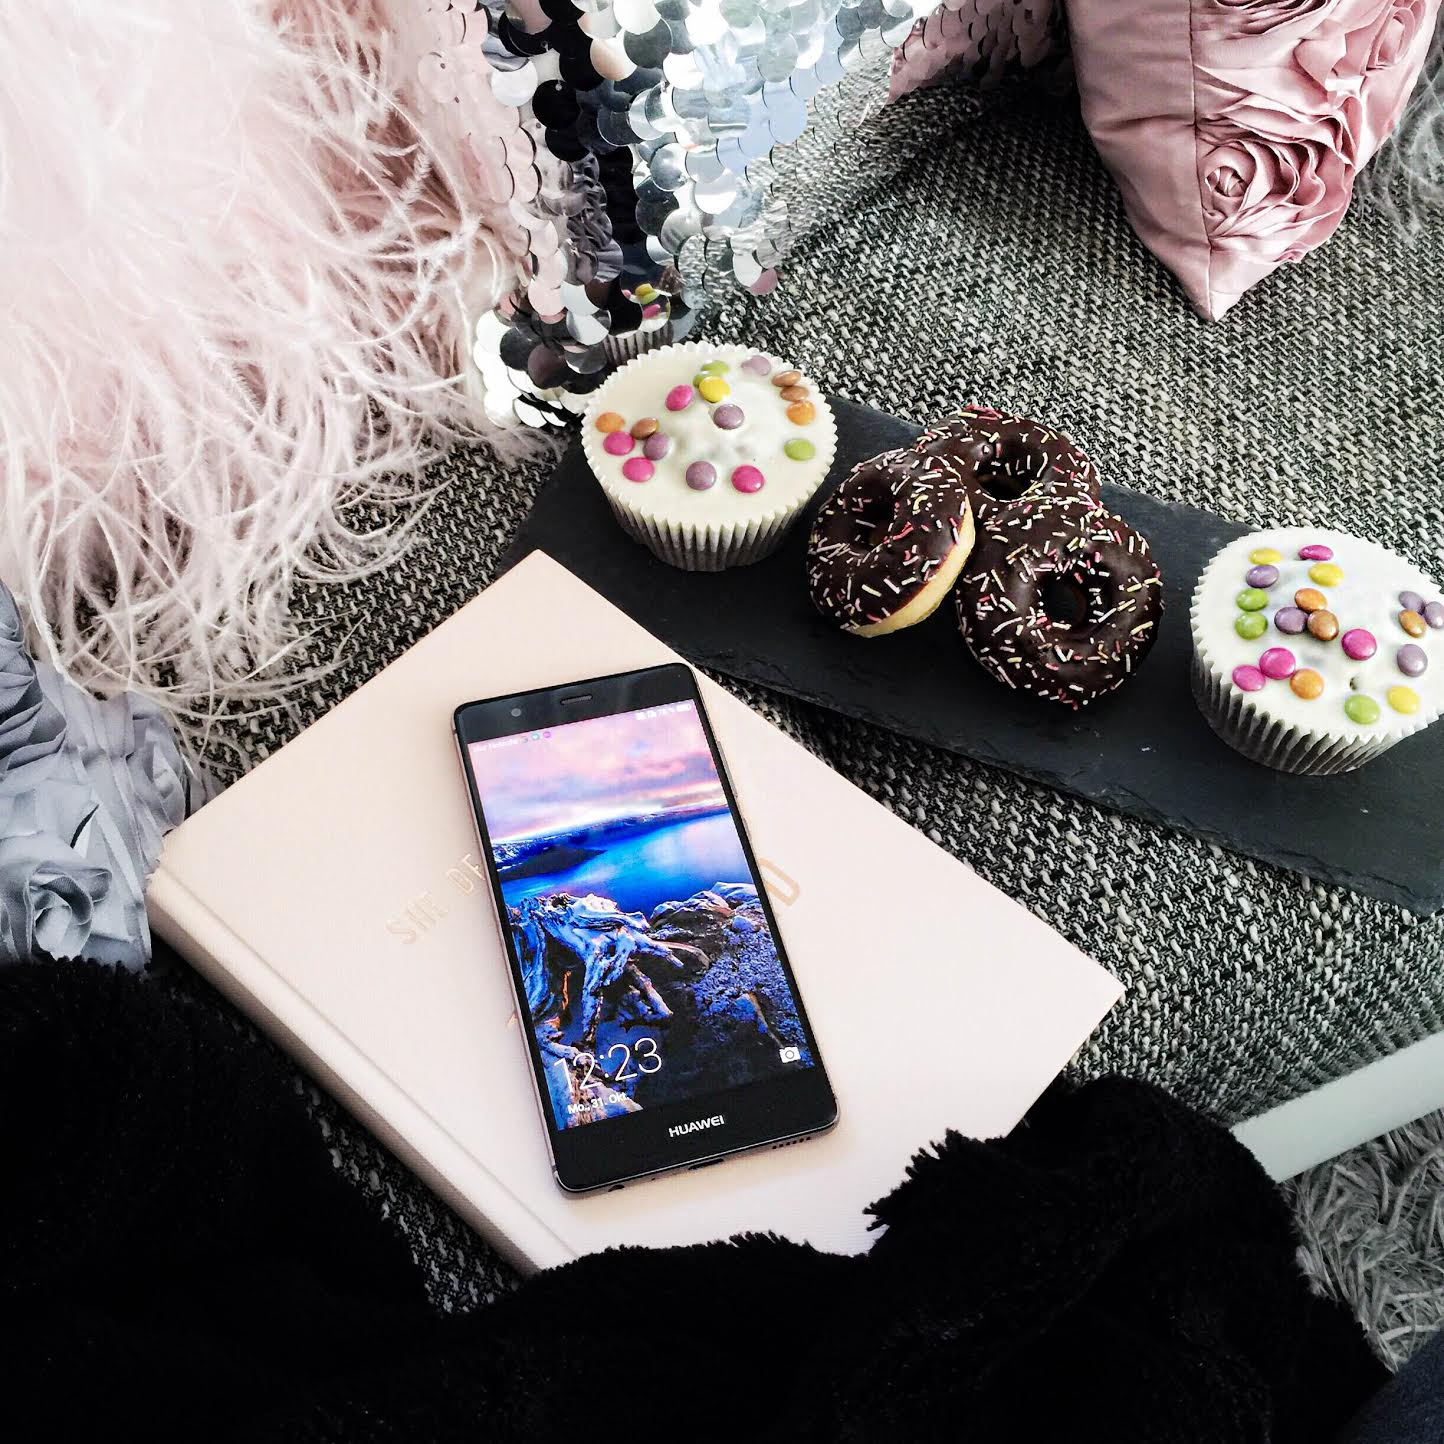 huawei p9 giveaway fashionhippieloves. Black Bedroom Furniture Sets. Home Design Ideas